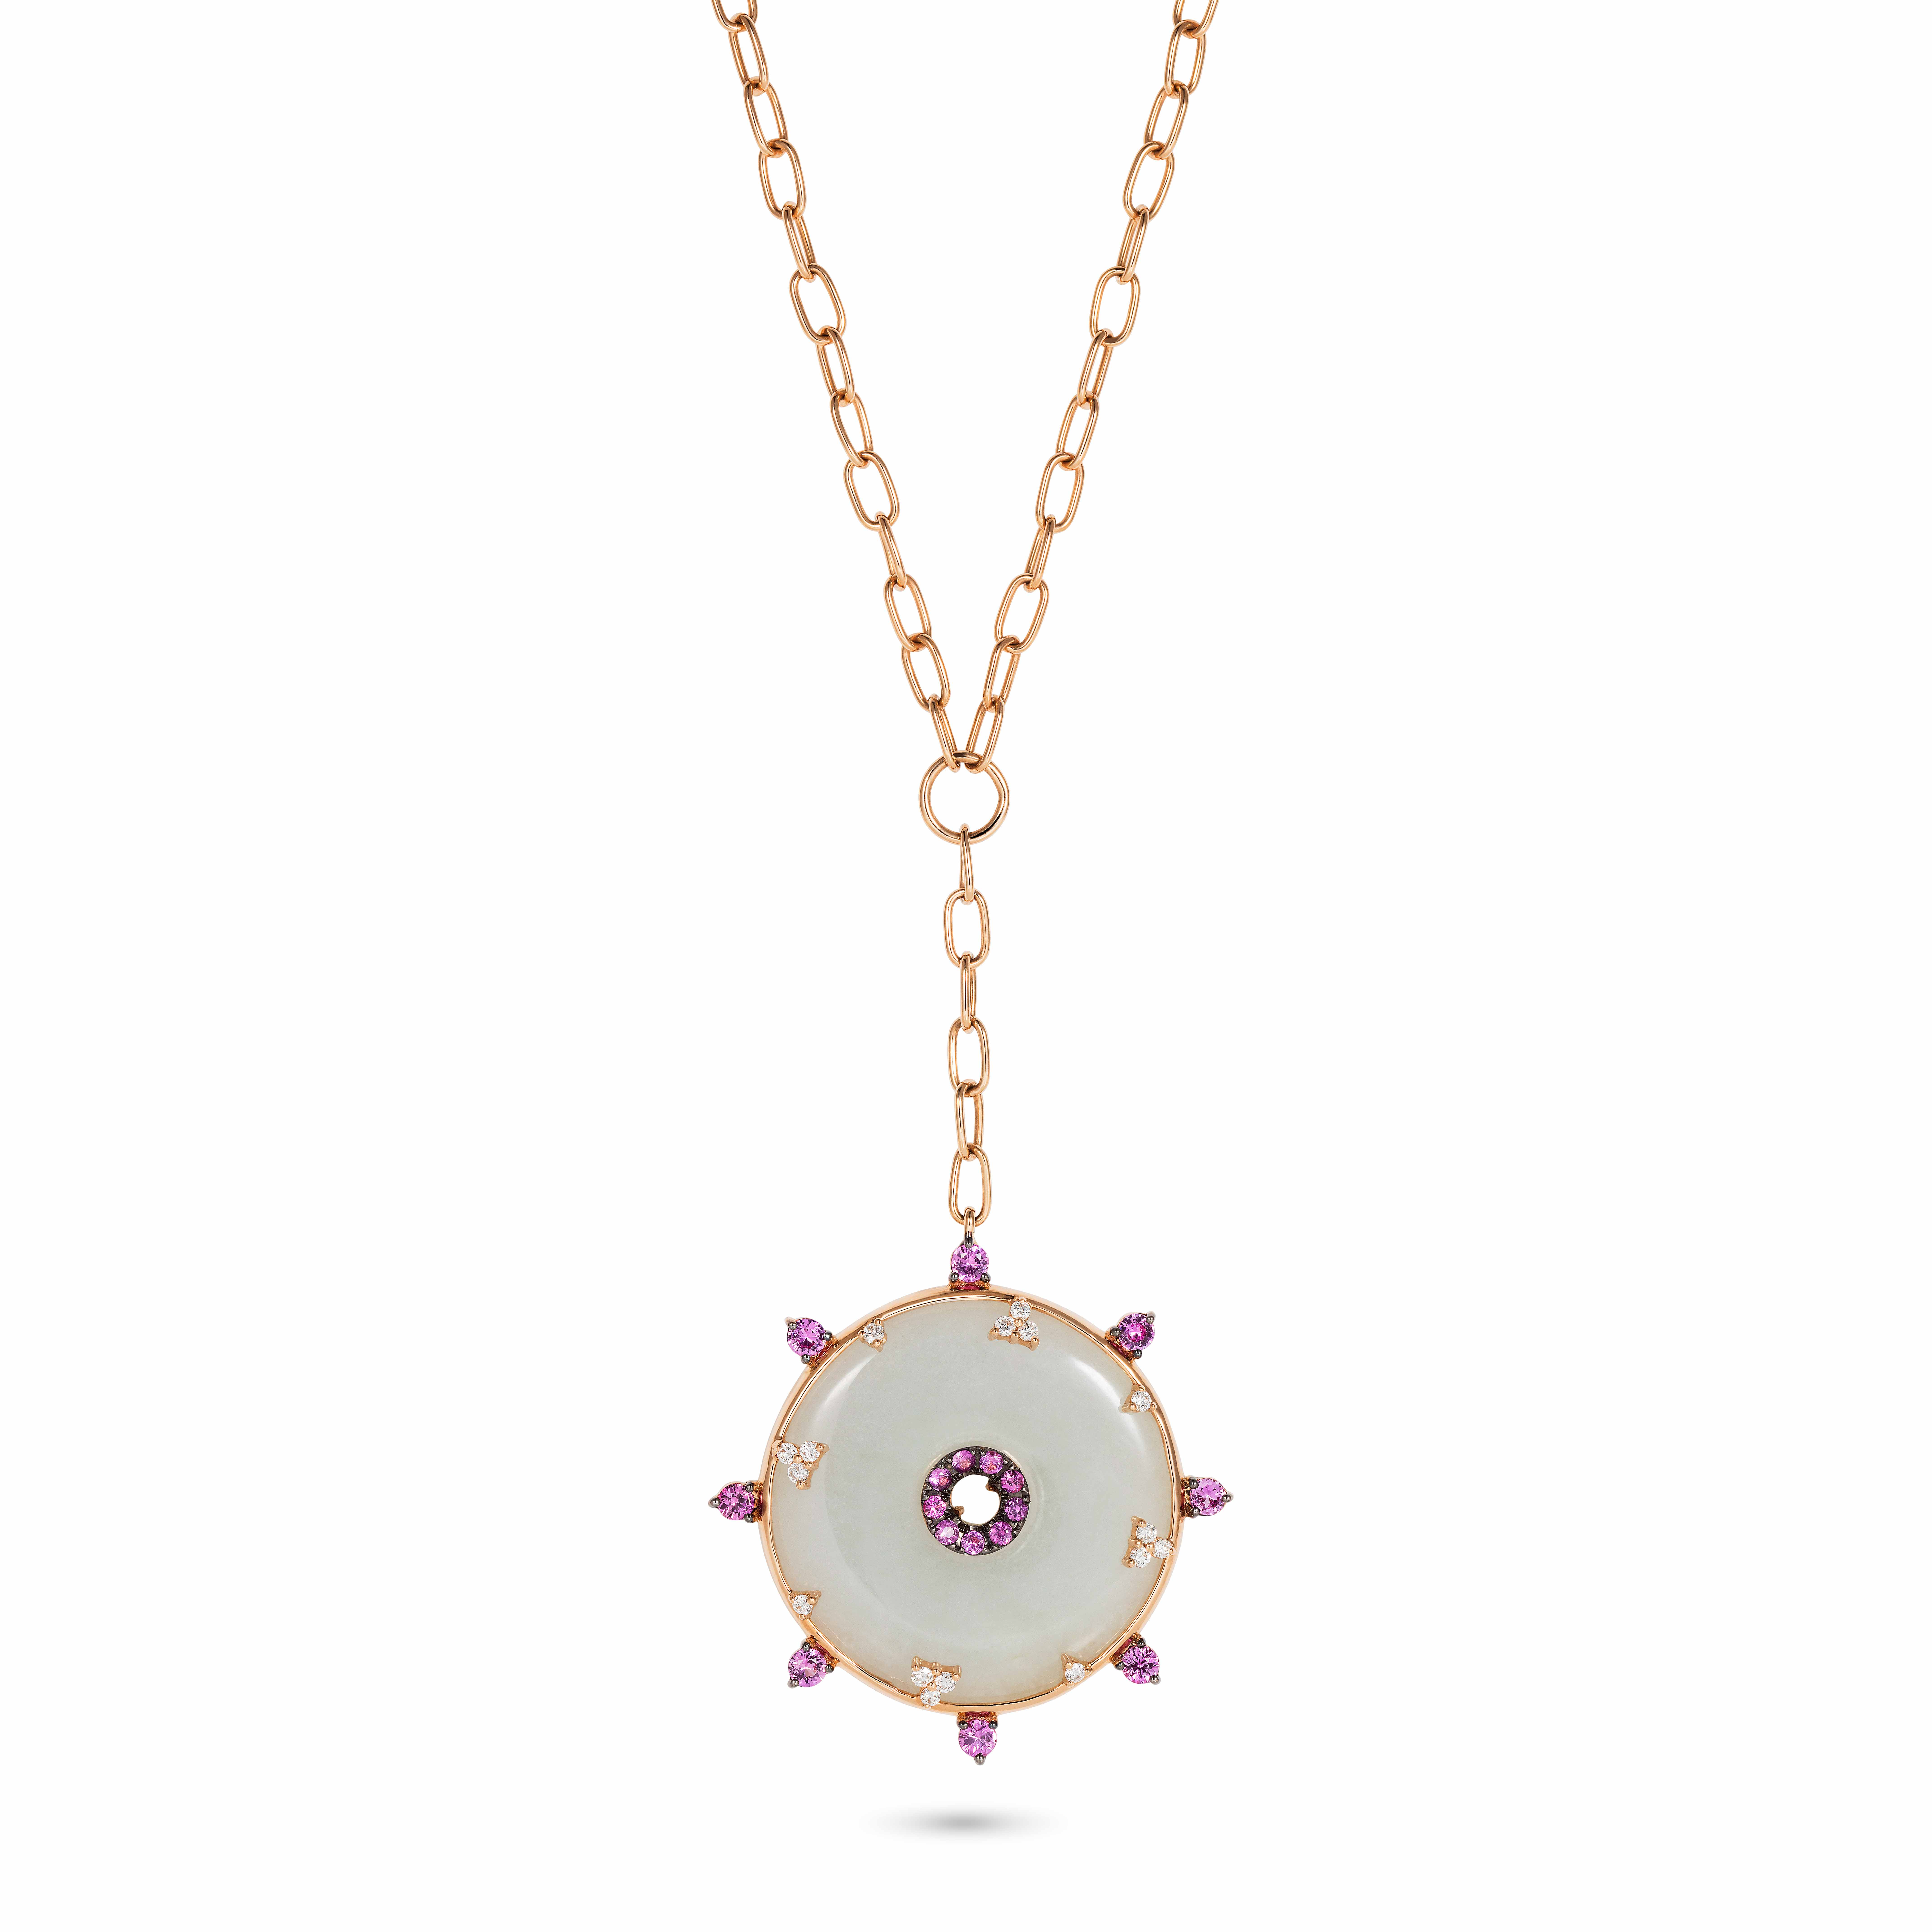 Celeste Pink Sapphire and Jade Necklace by Nadine Aysoy on curated-crowd.com